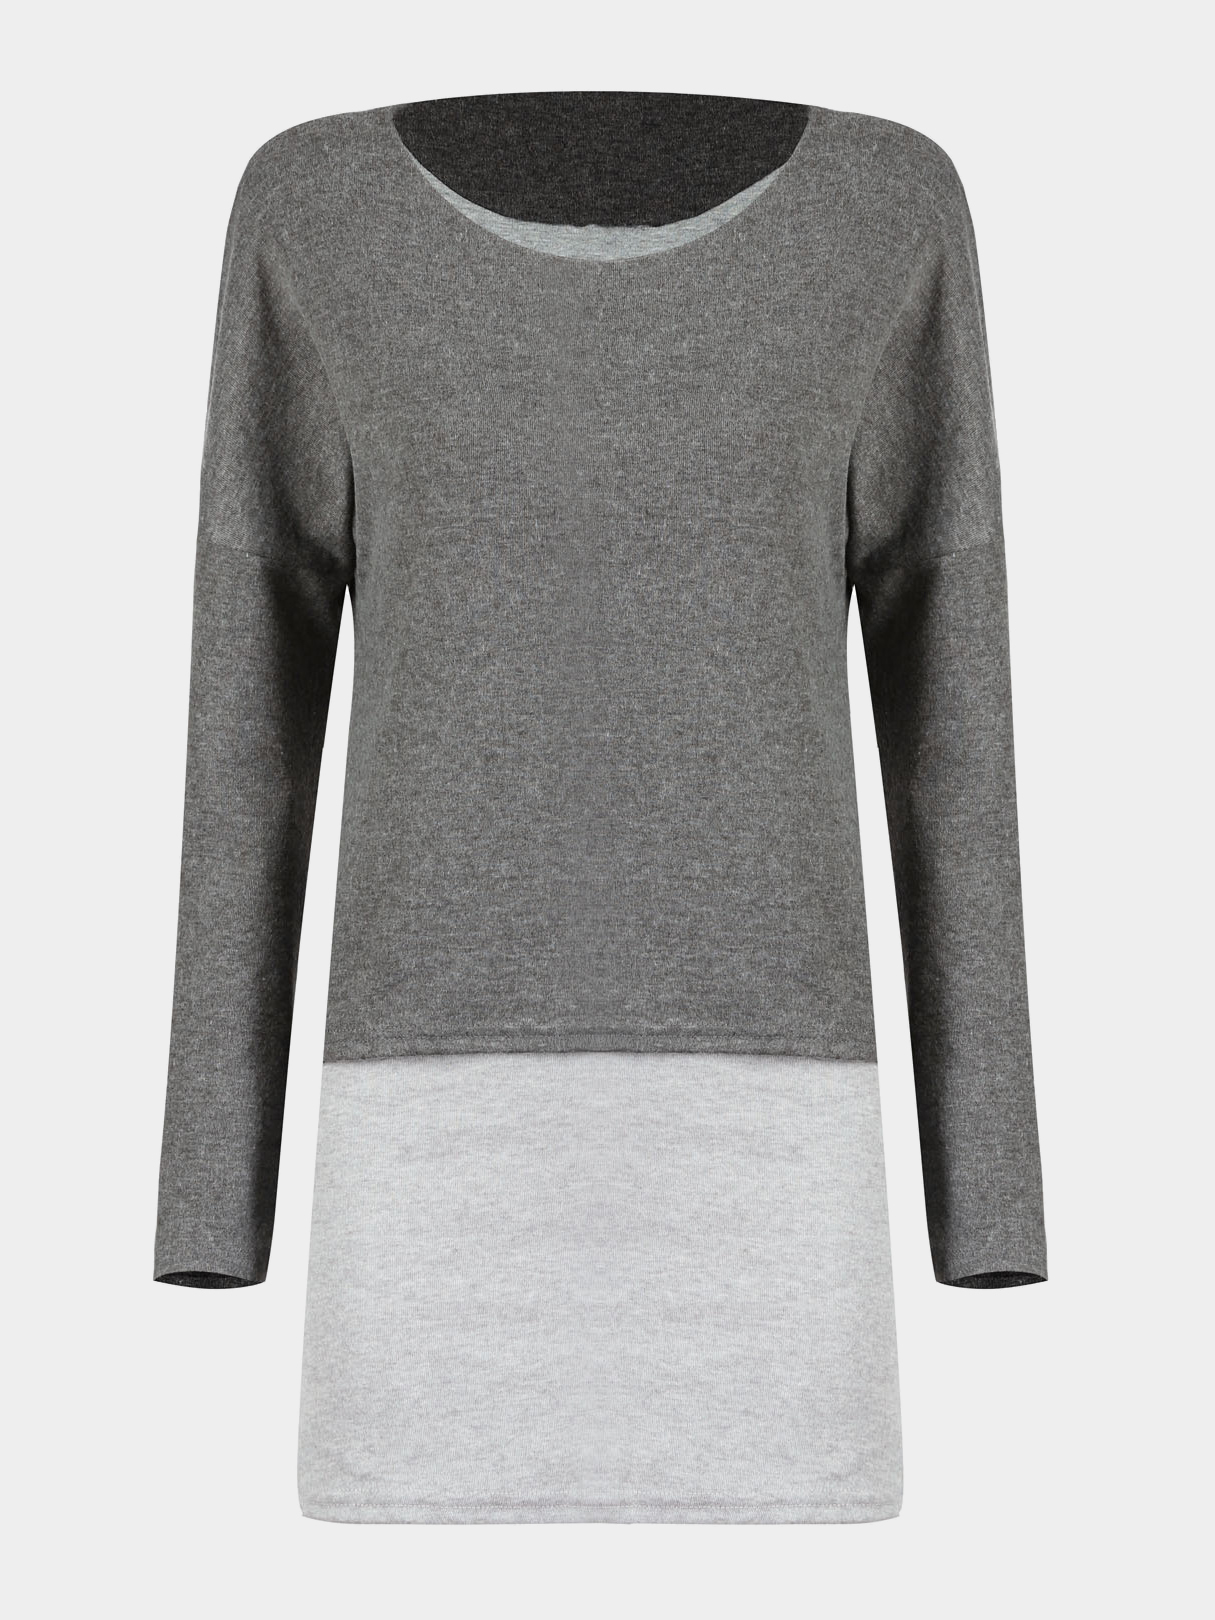 Double Layer Top in Grey